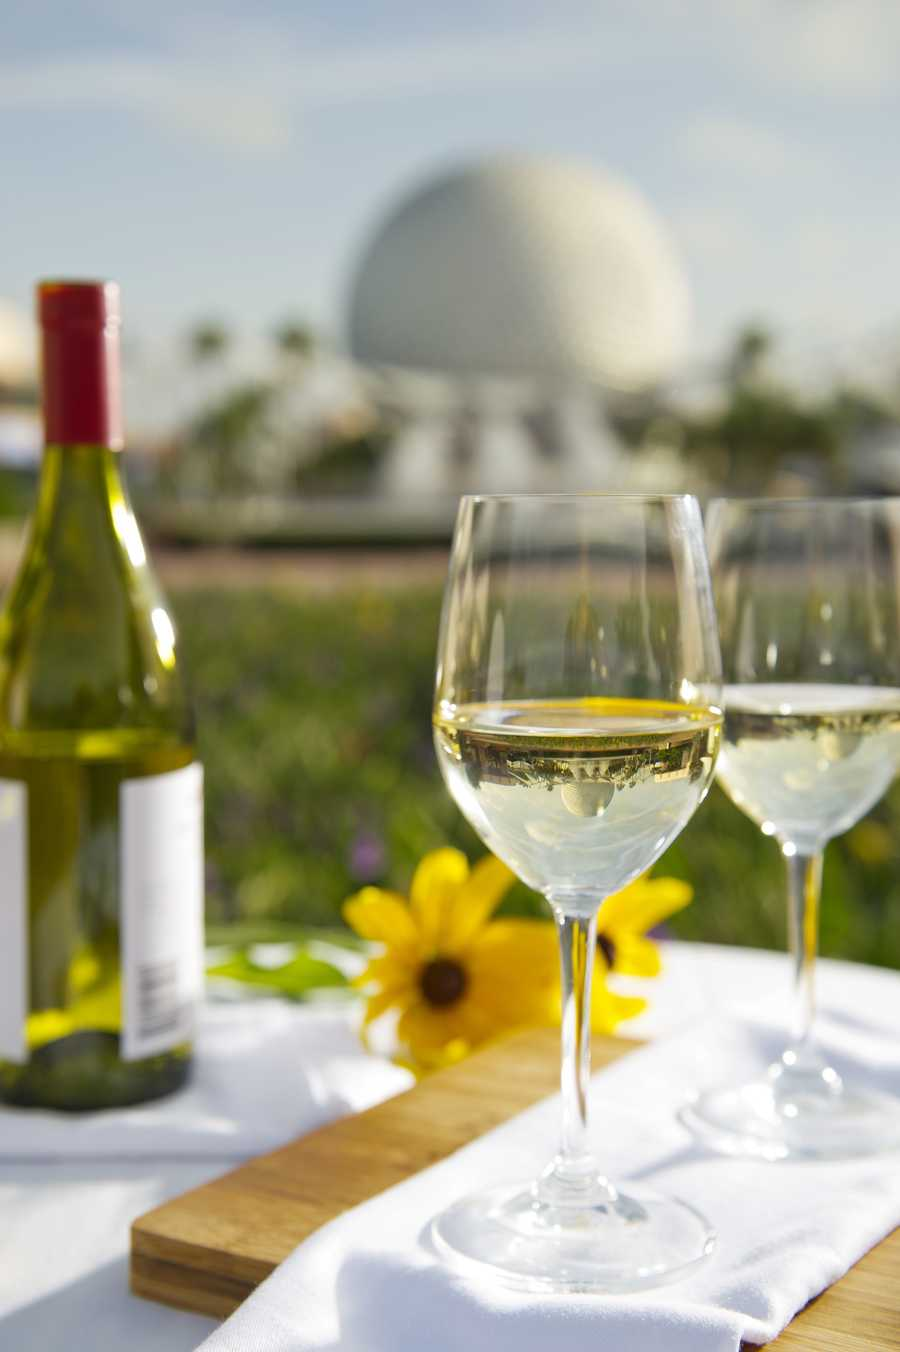 More than 33,000 bottles of Champagne and wine from around the world will be uncorked during the 17th annual Epcot International Food & Wine Festival at Walt Disney World Resort.